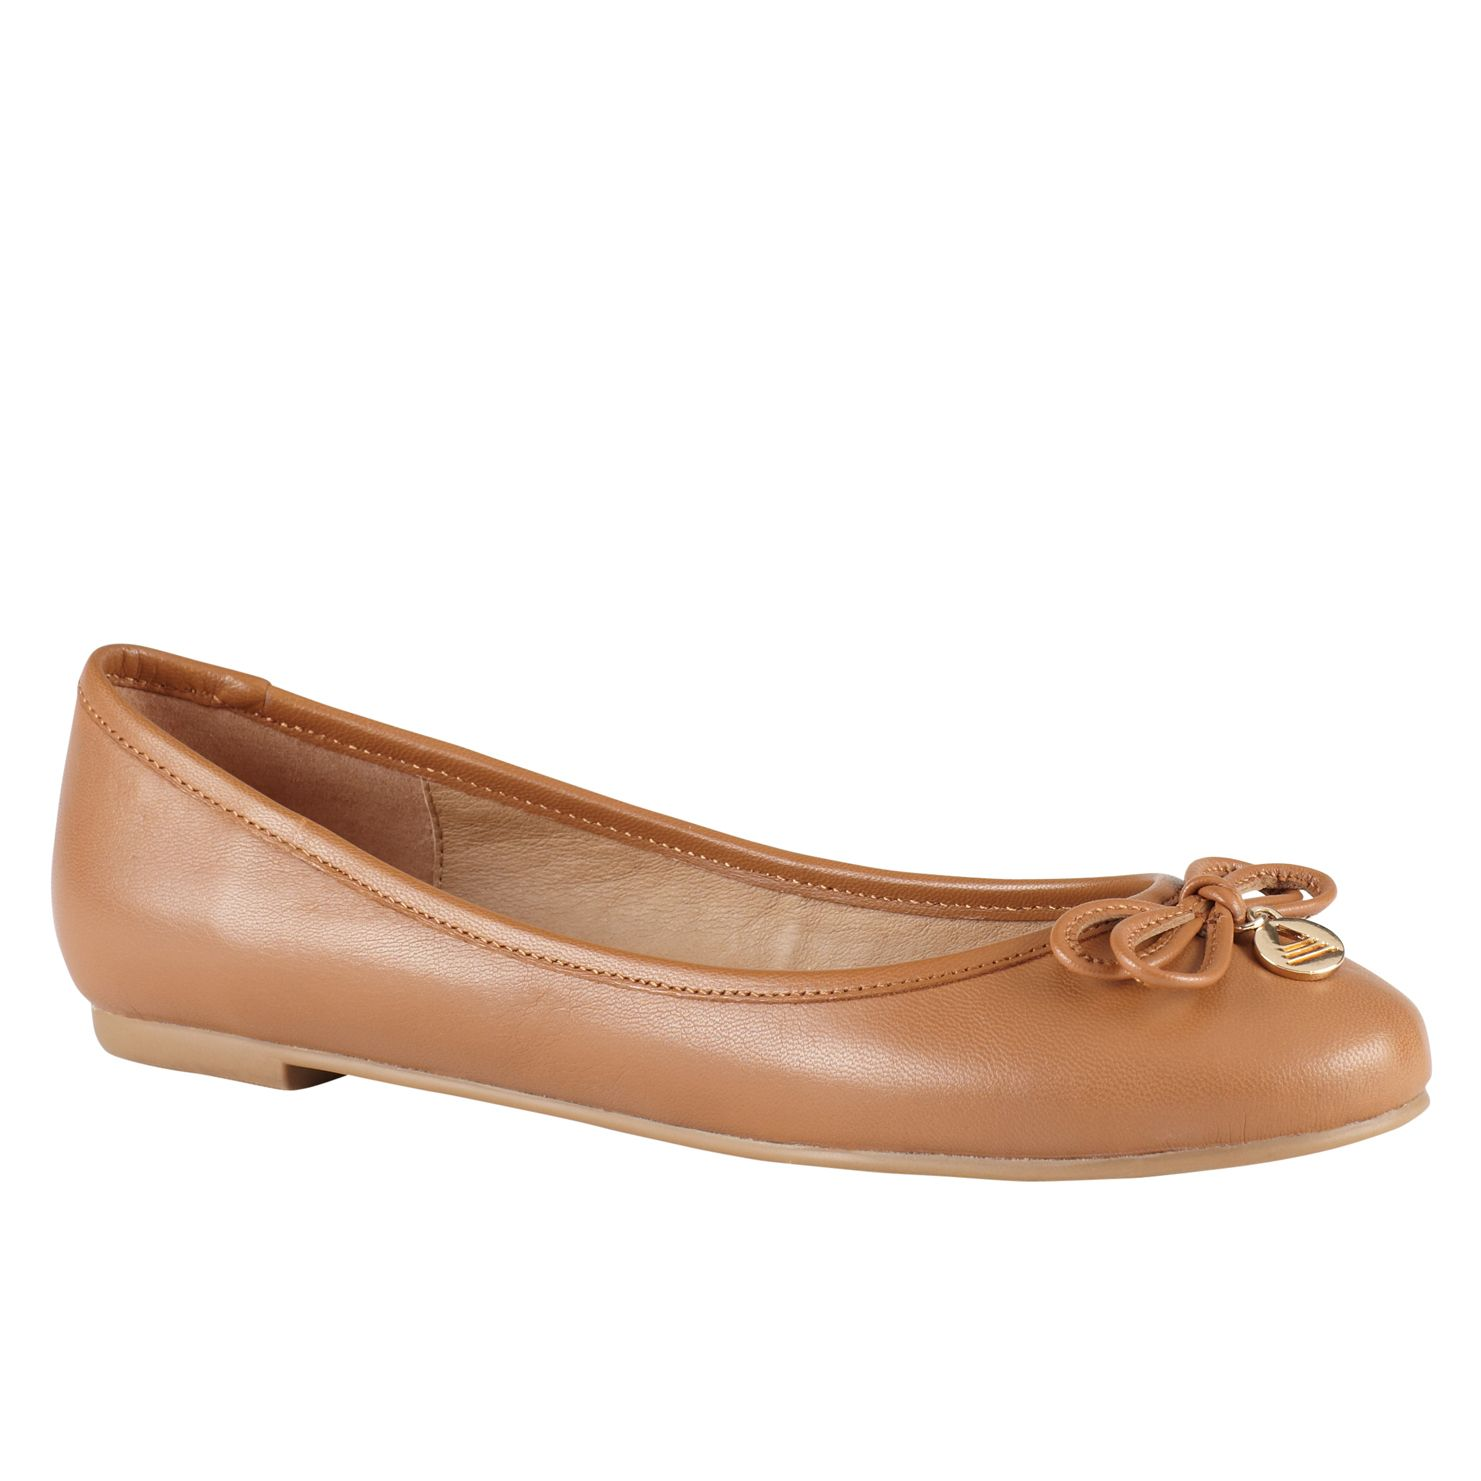 Qeirwen ballerina pump shoes